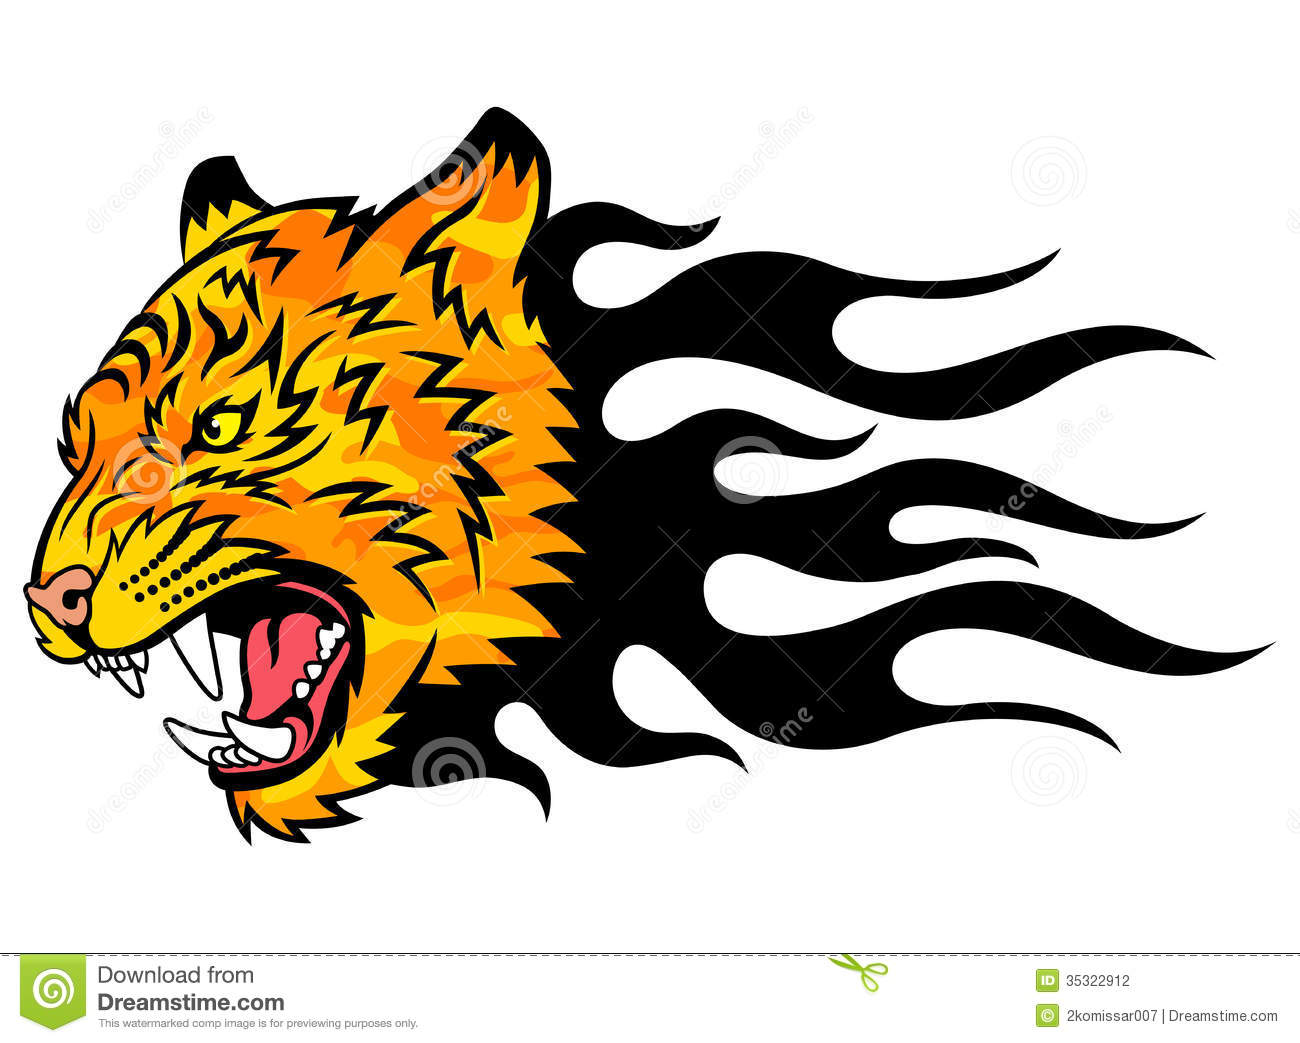 Tiger on fire stock vector. Image of fang, front, mascot